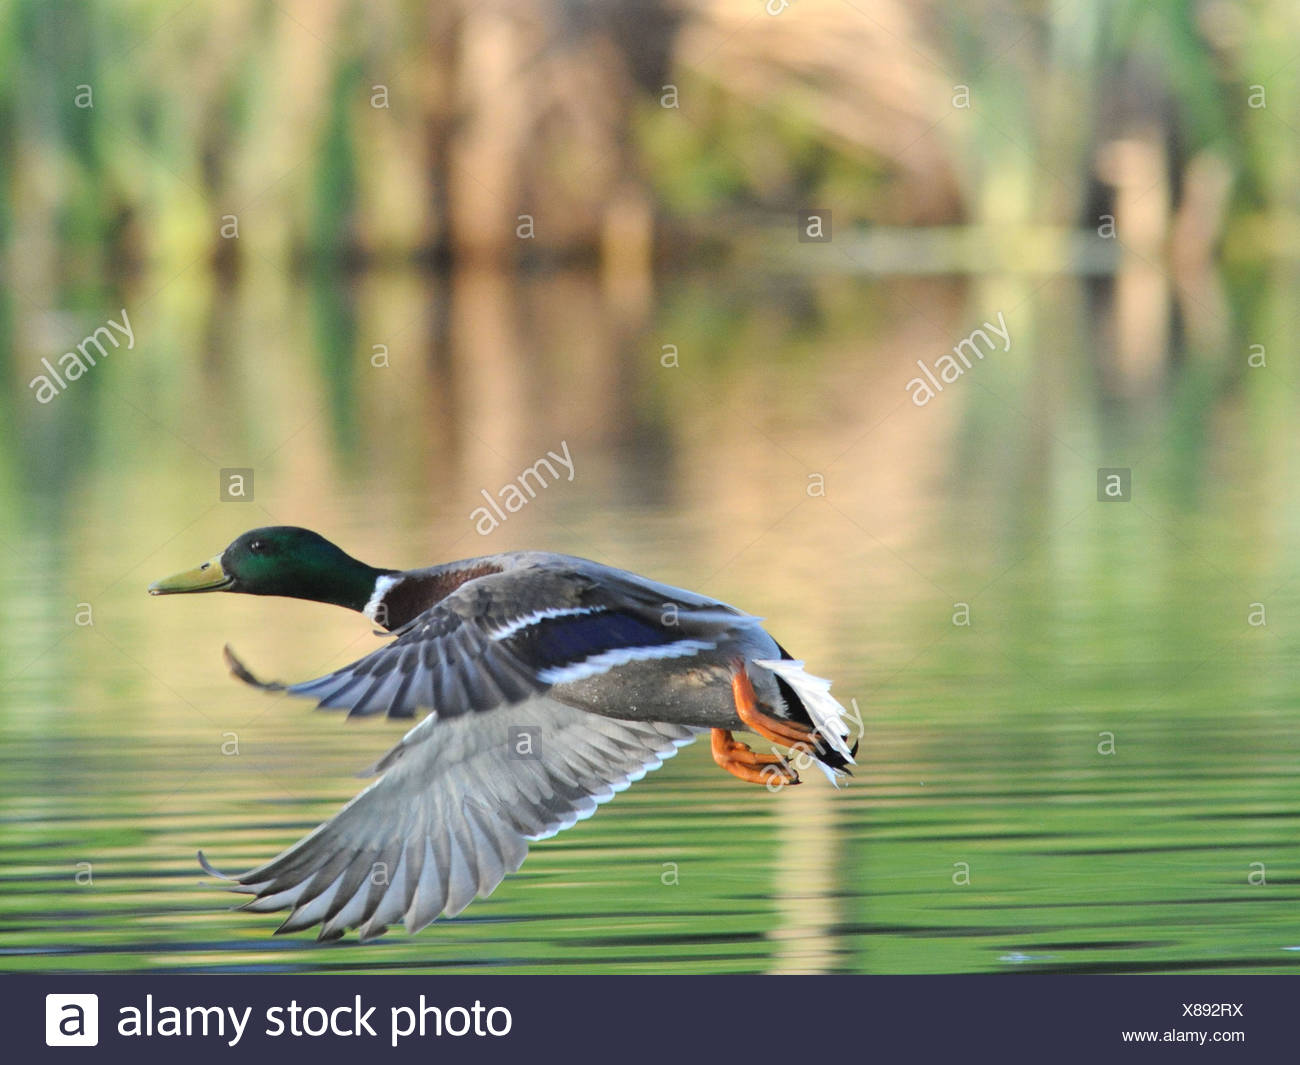 A male mallard flying above the water. - Stock Image